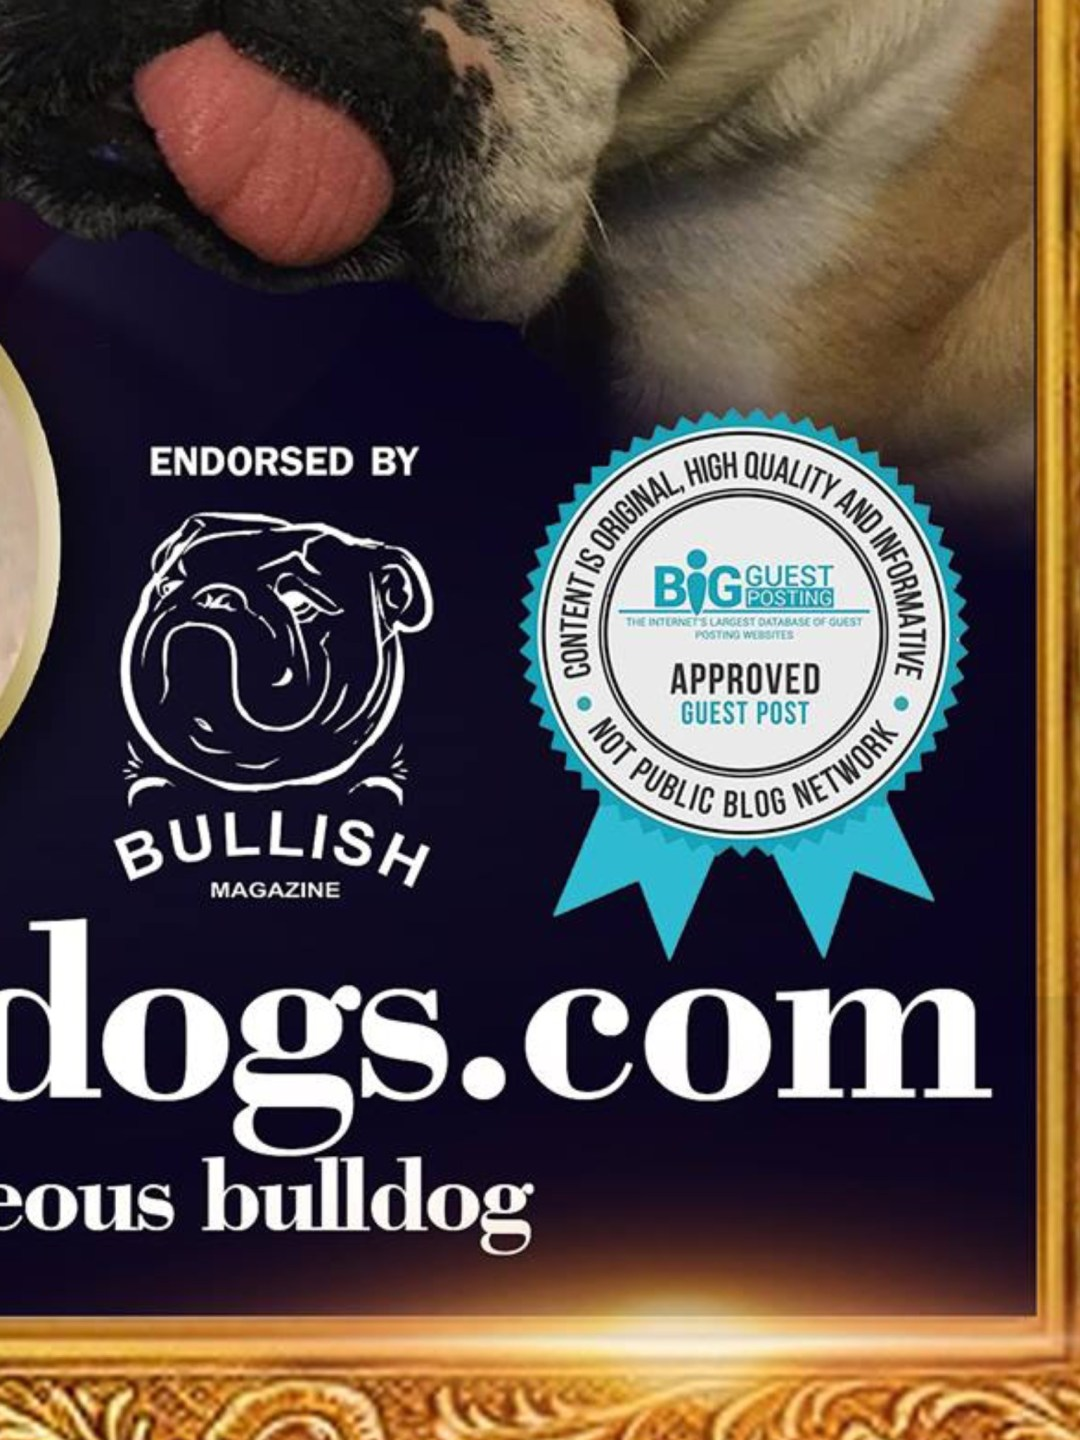 Collectibulldogs our Blog Questions Answered